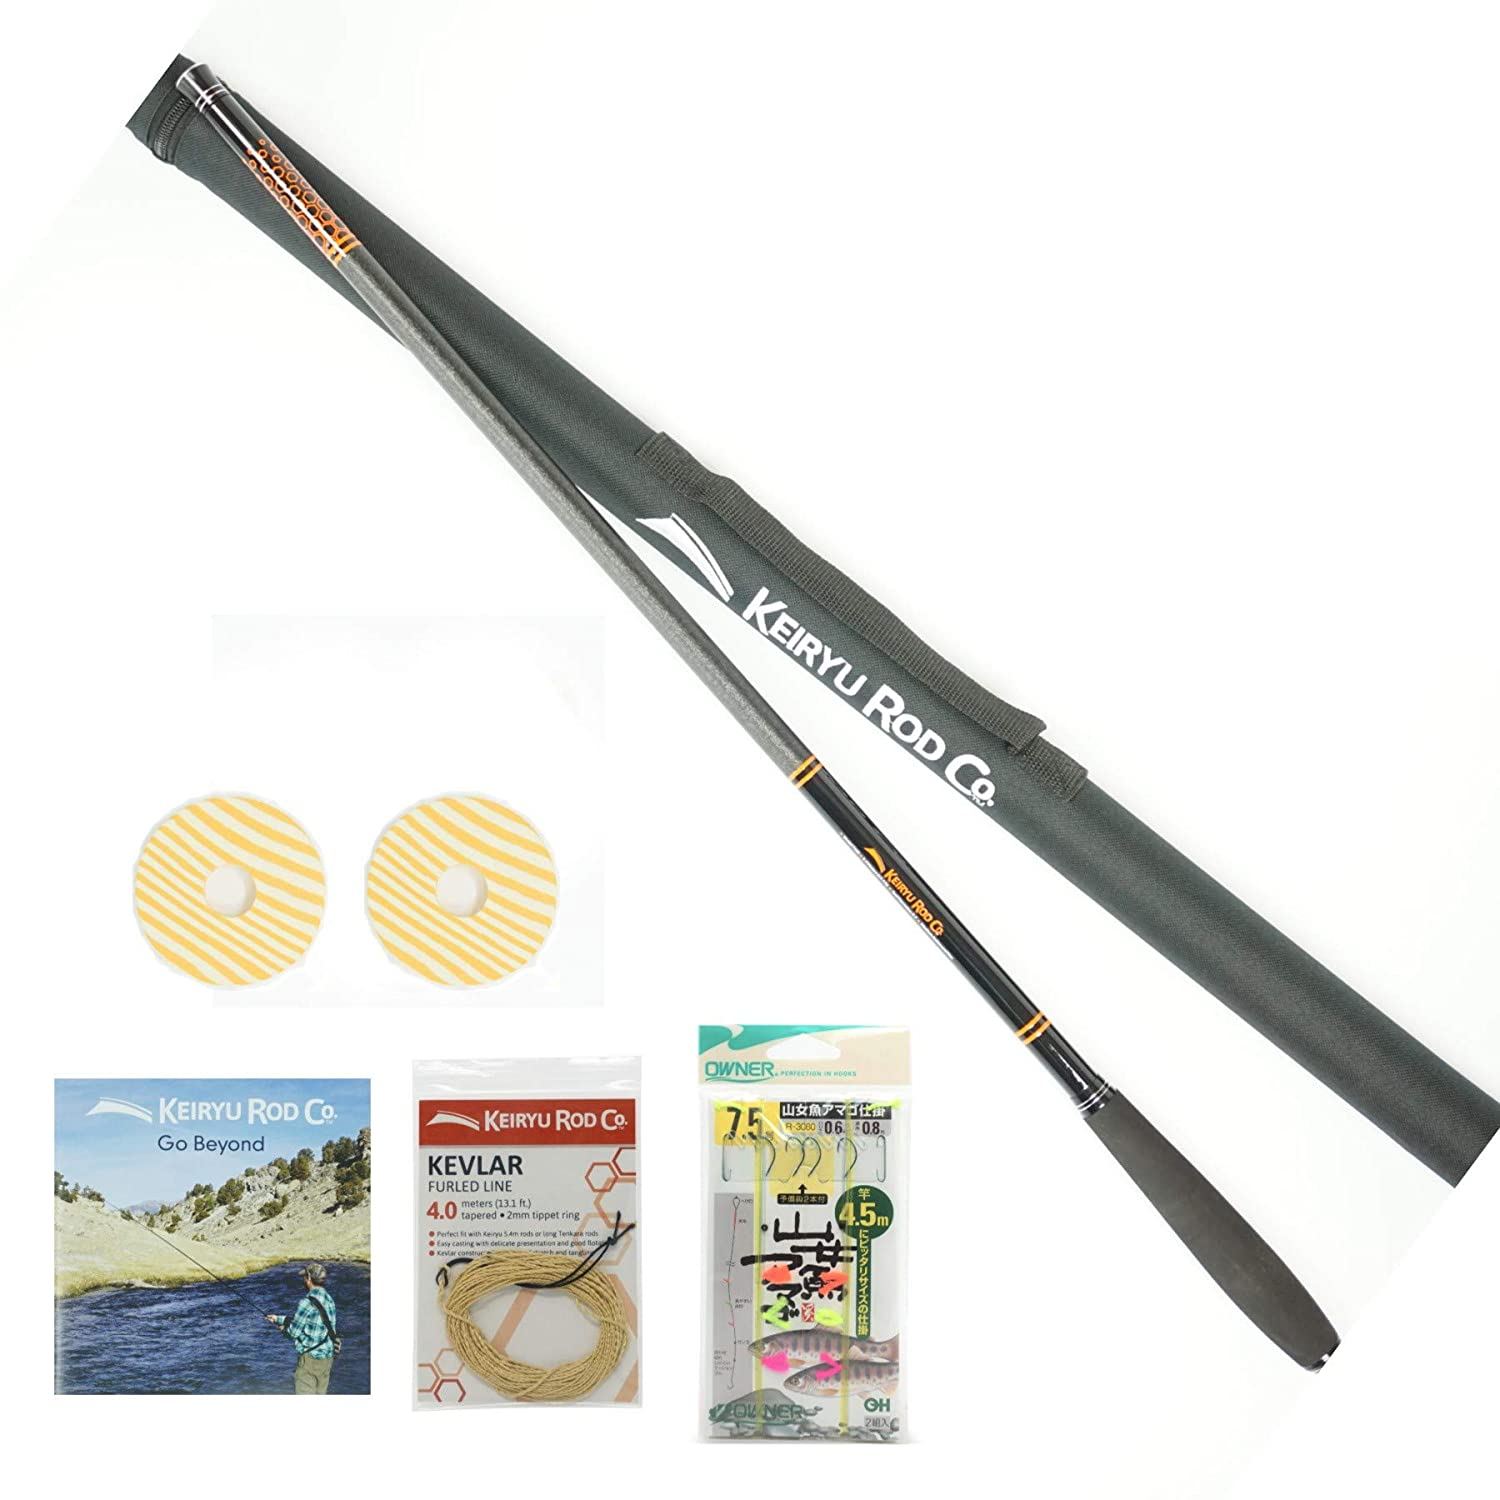 Keiryu Rod Co. Telescoping 17.7 FT Keiryu Trout Rod, Perfect for Weighted Bait and Nymphs, High Performance IM Carbon Rod and Starter Kit